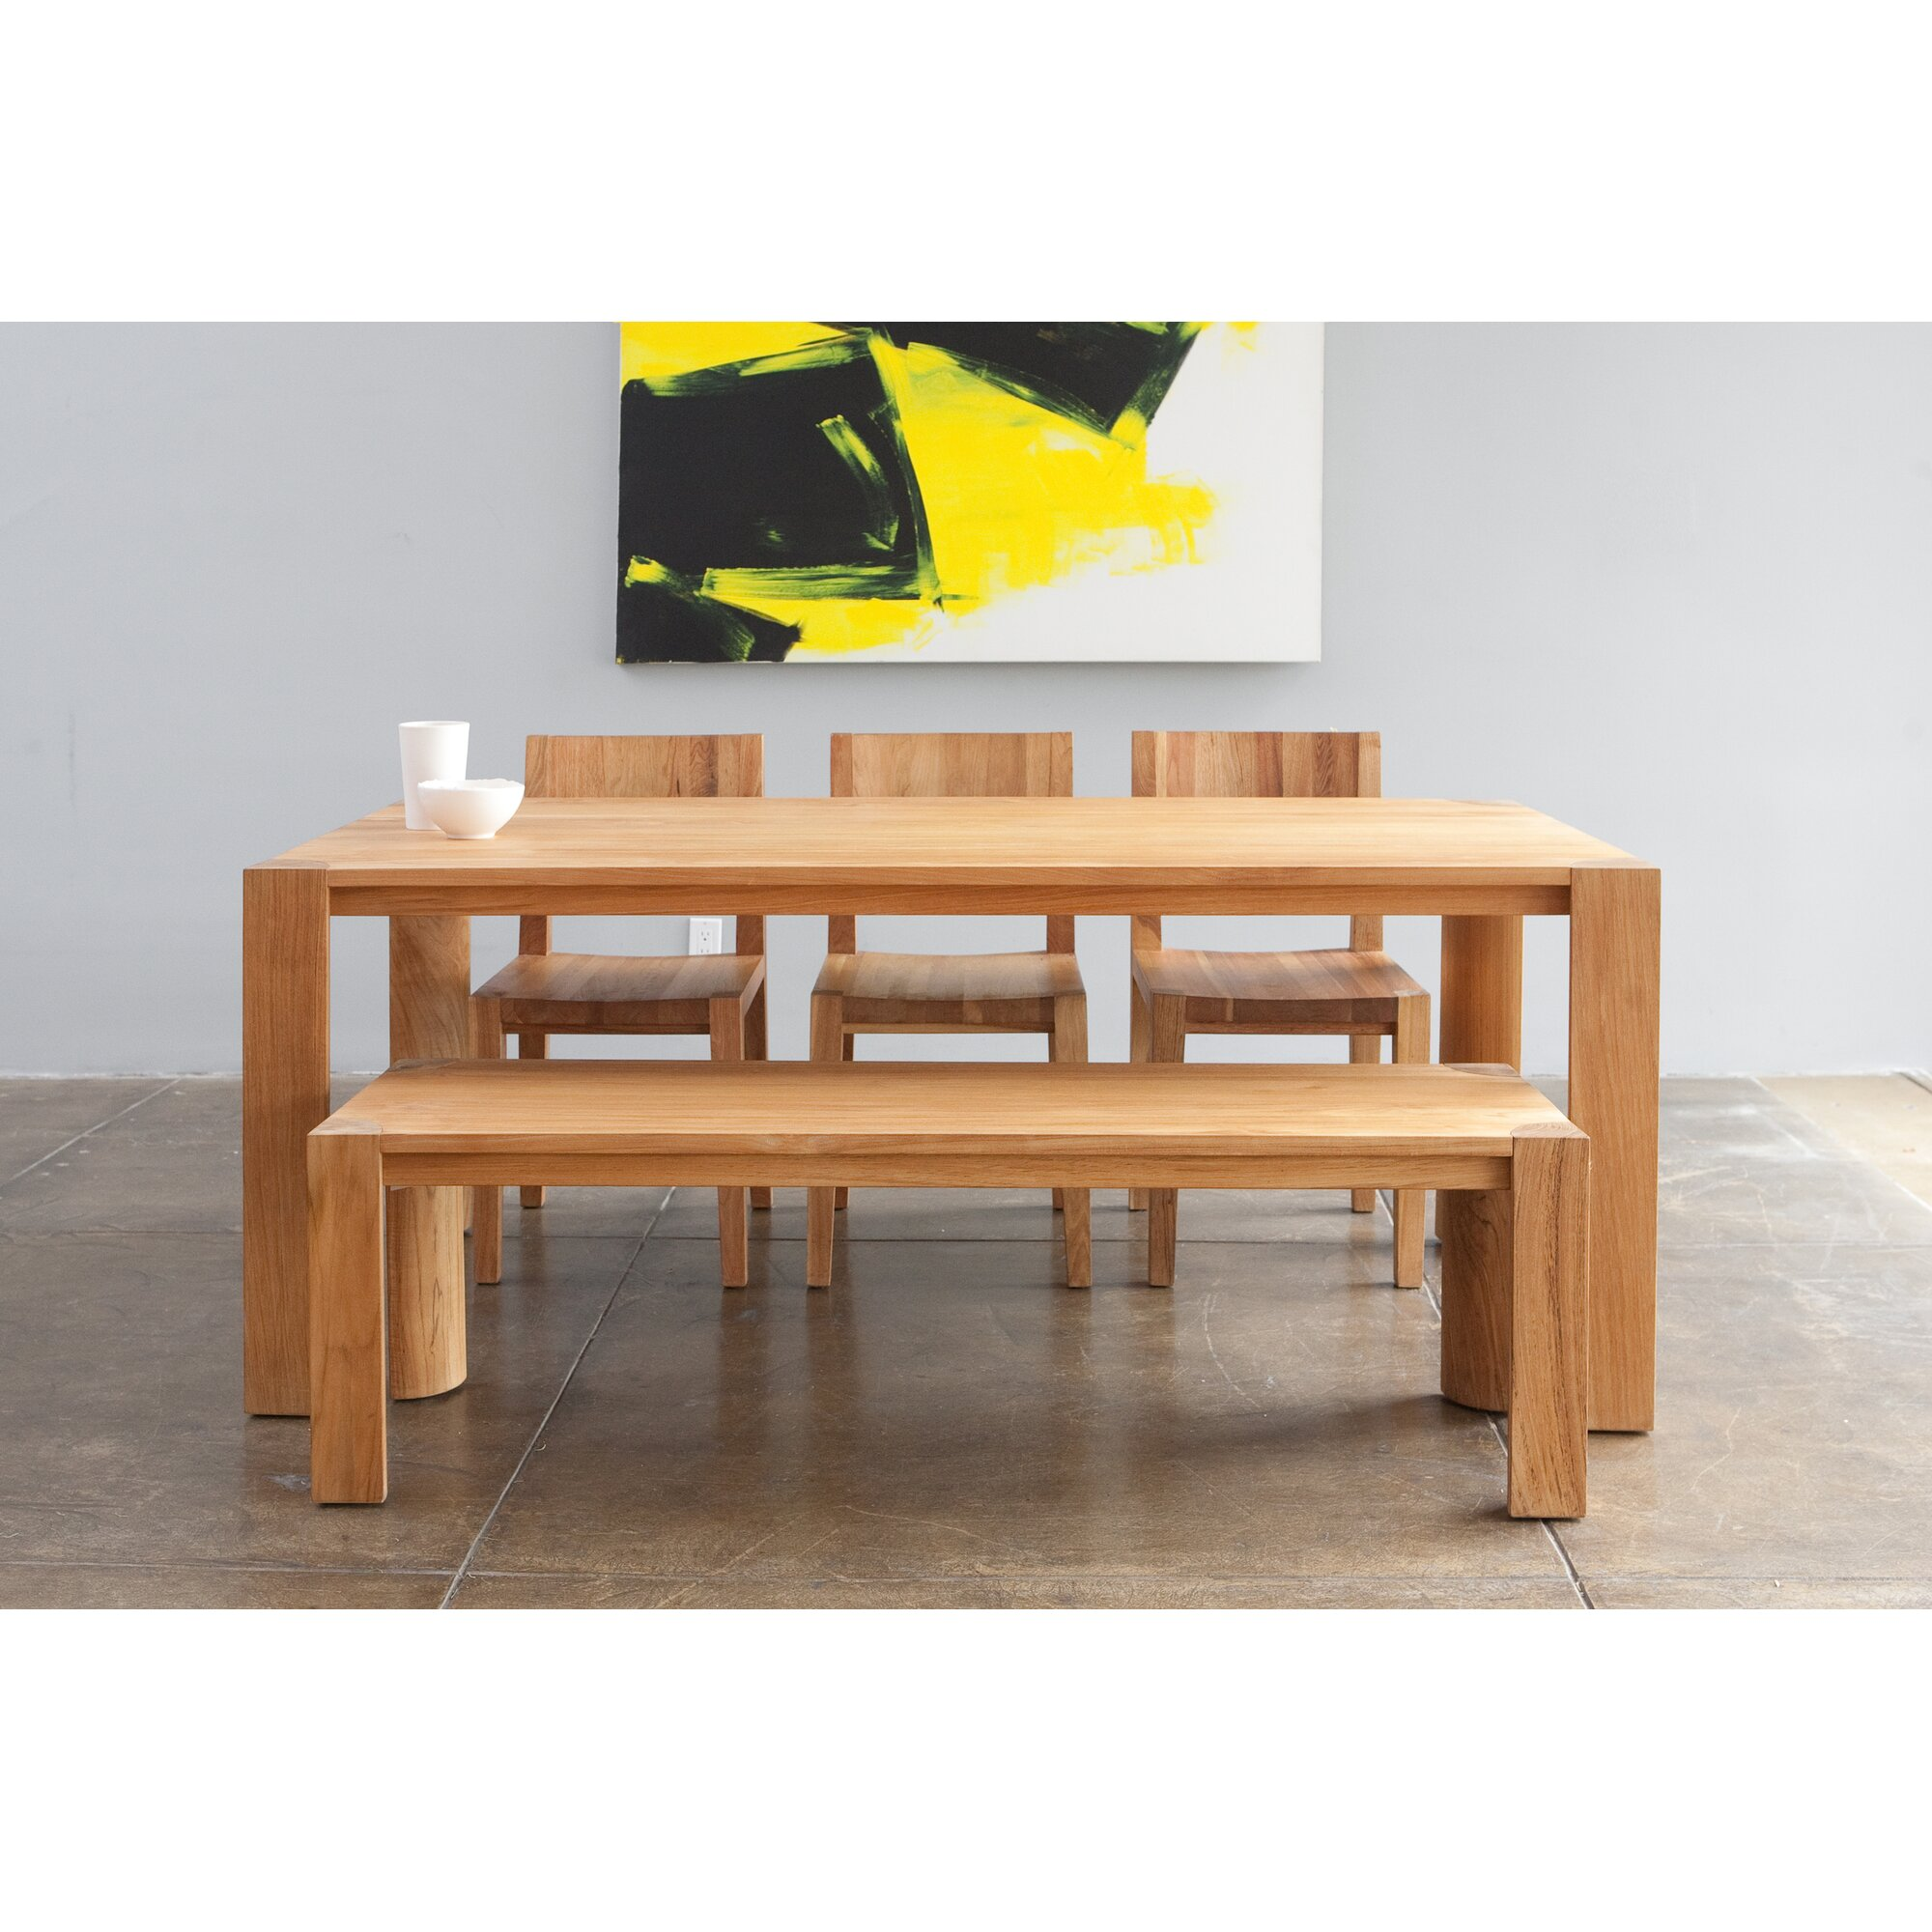 Pchseries dining table allmodern for Serie a table 1984 85